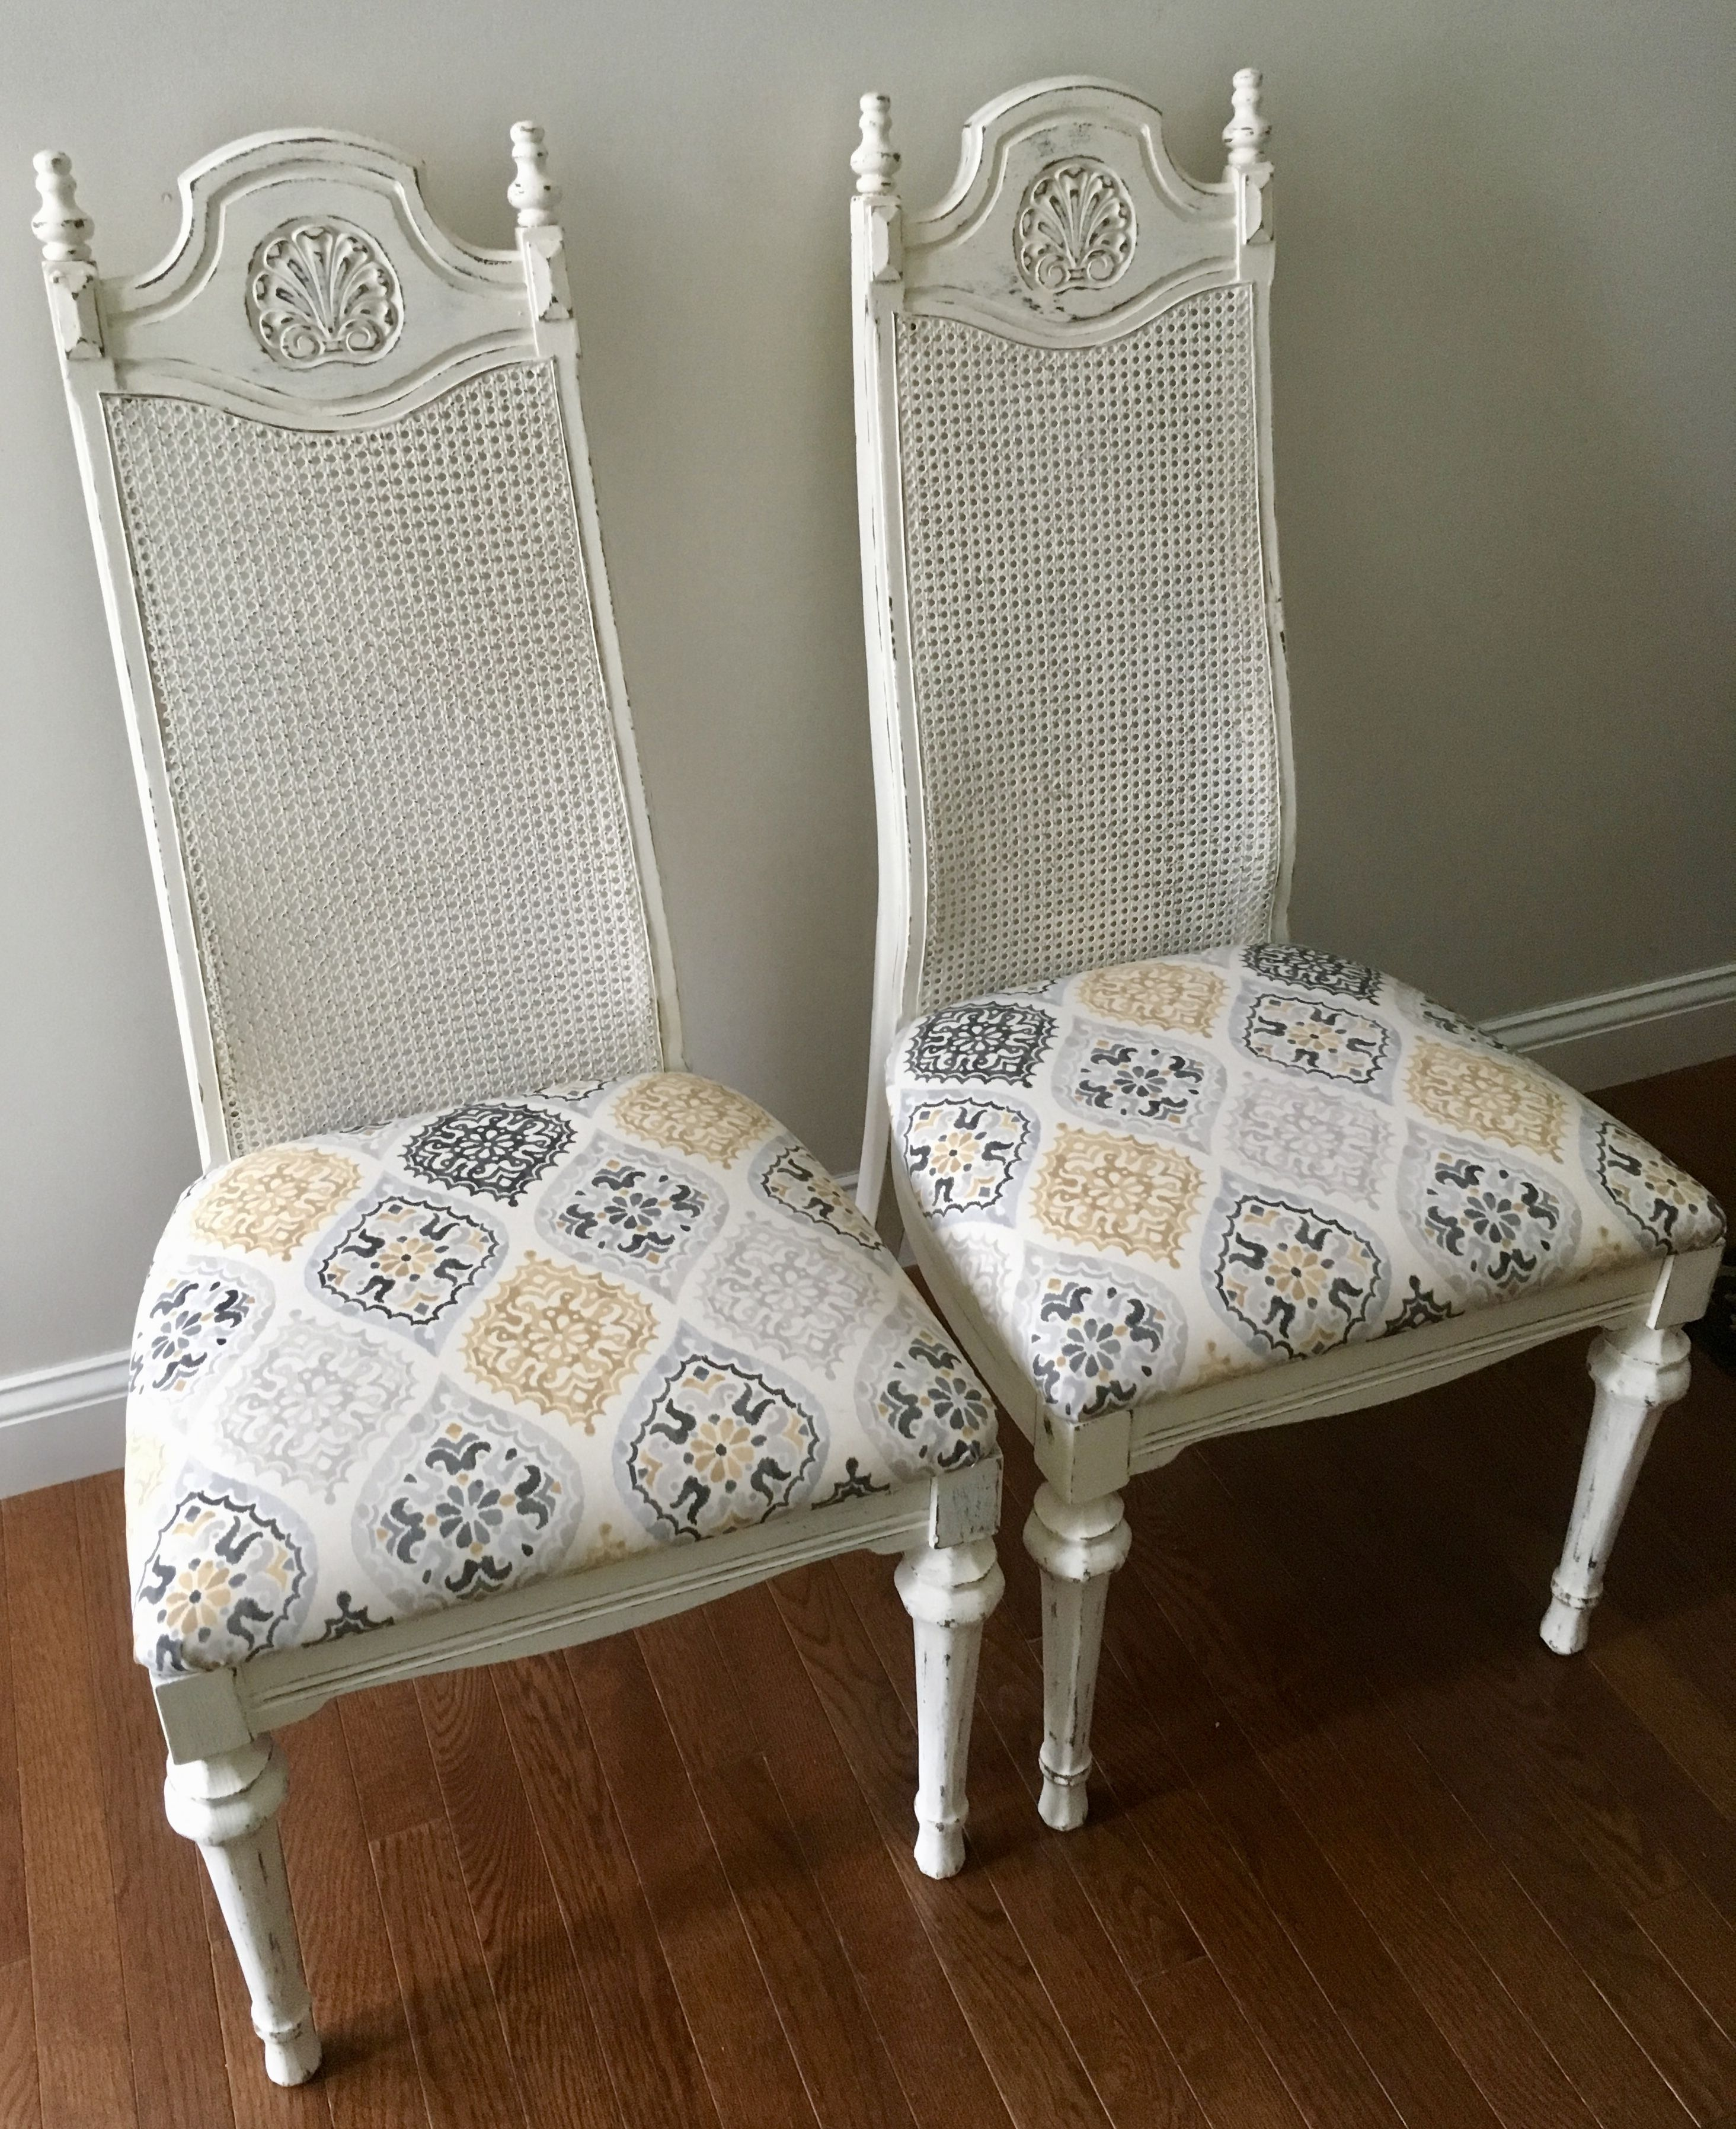 Pair of painted and distressed cane back chairs with updated upholstery